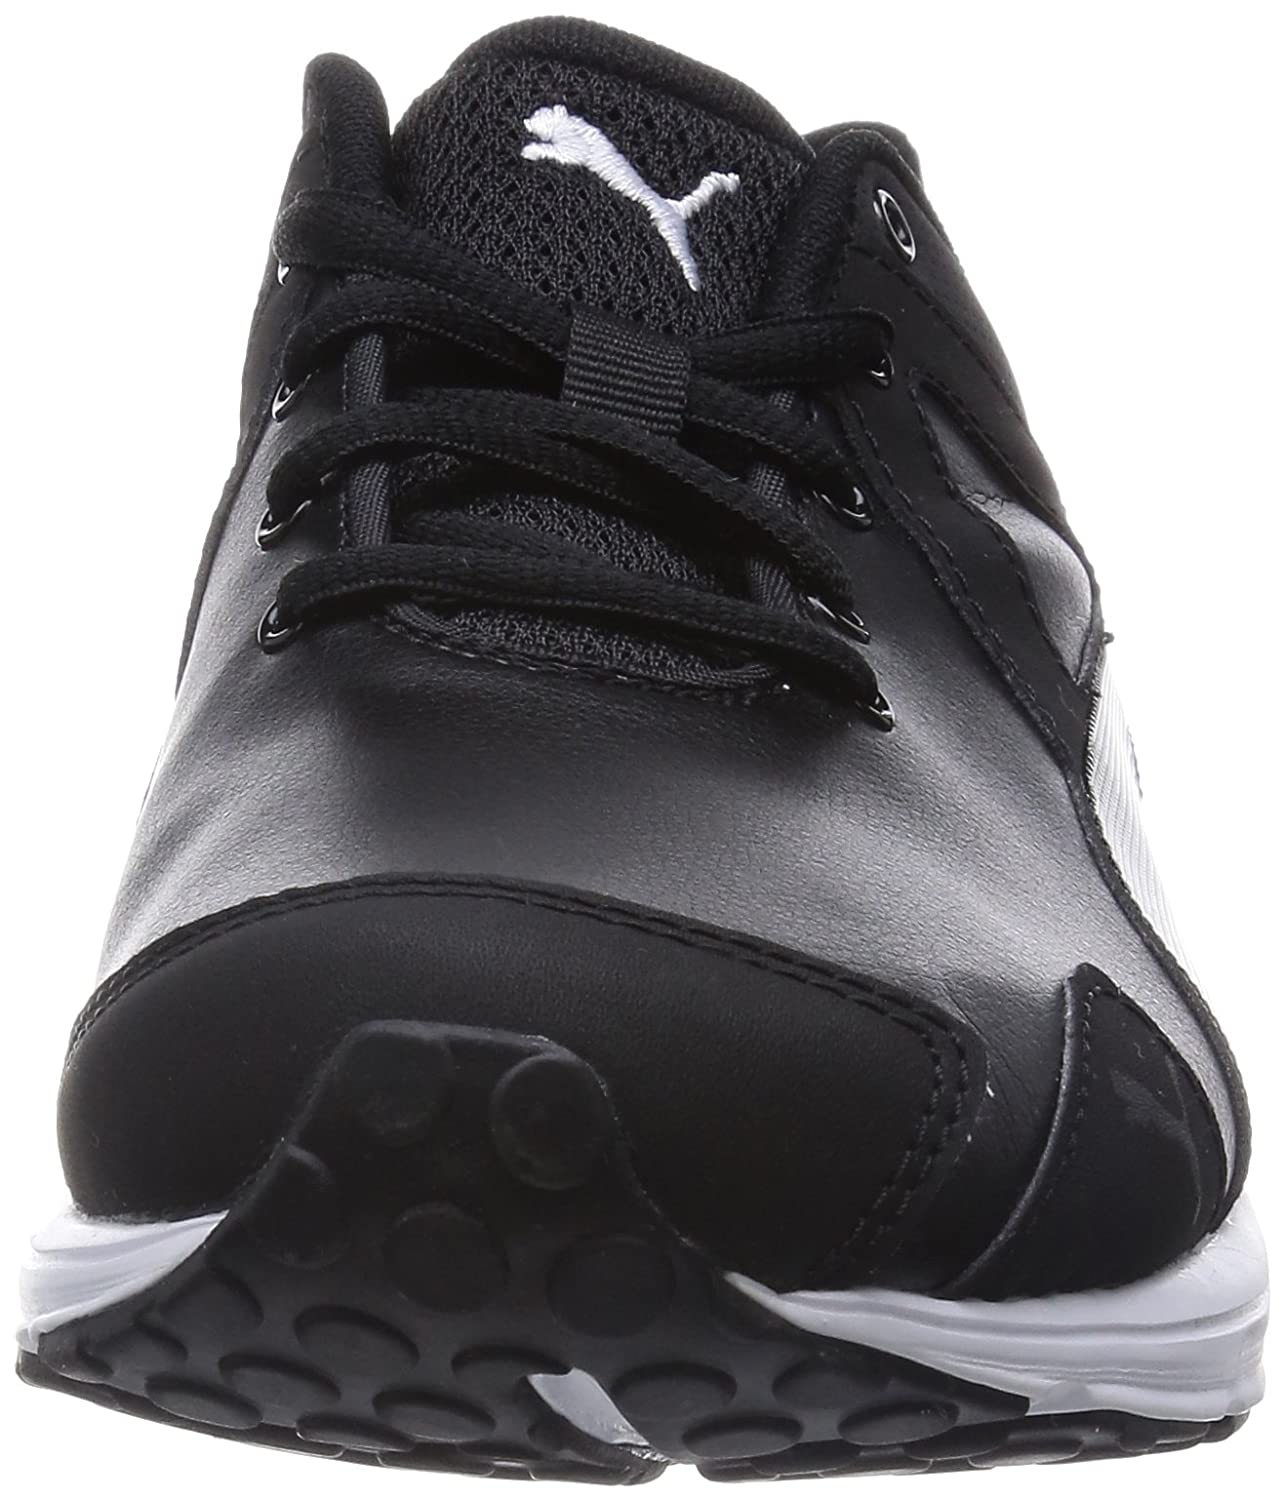 Evader Synthetic Leather, Womens Basketball Shoes, Black, 7 UK Puma